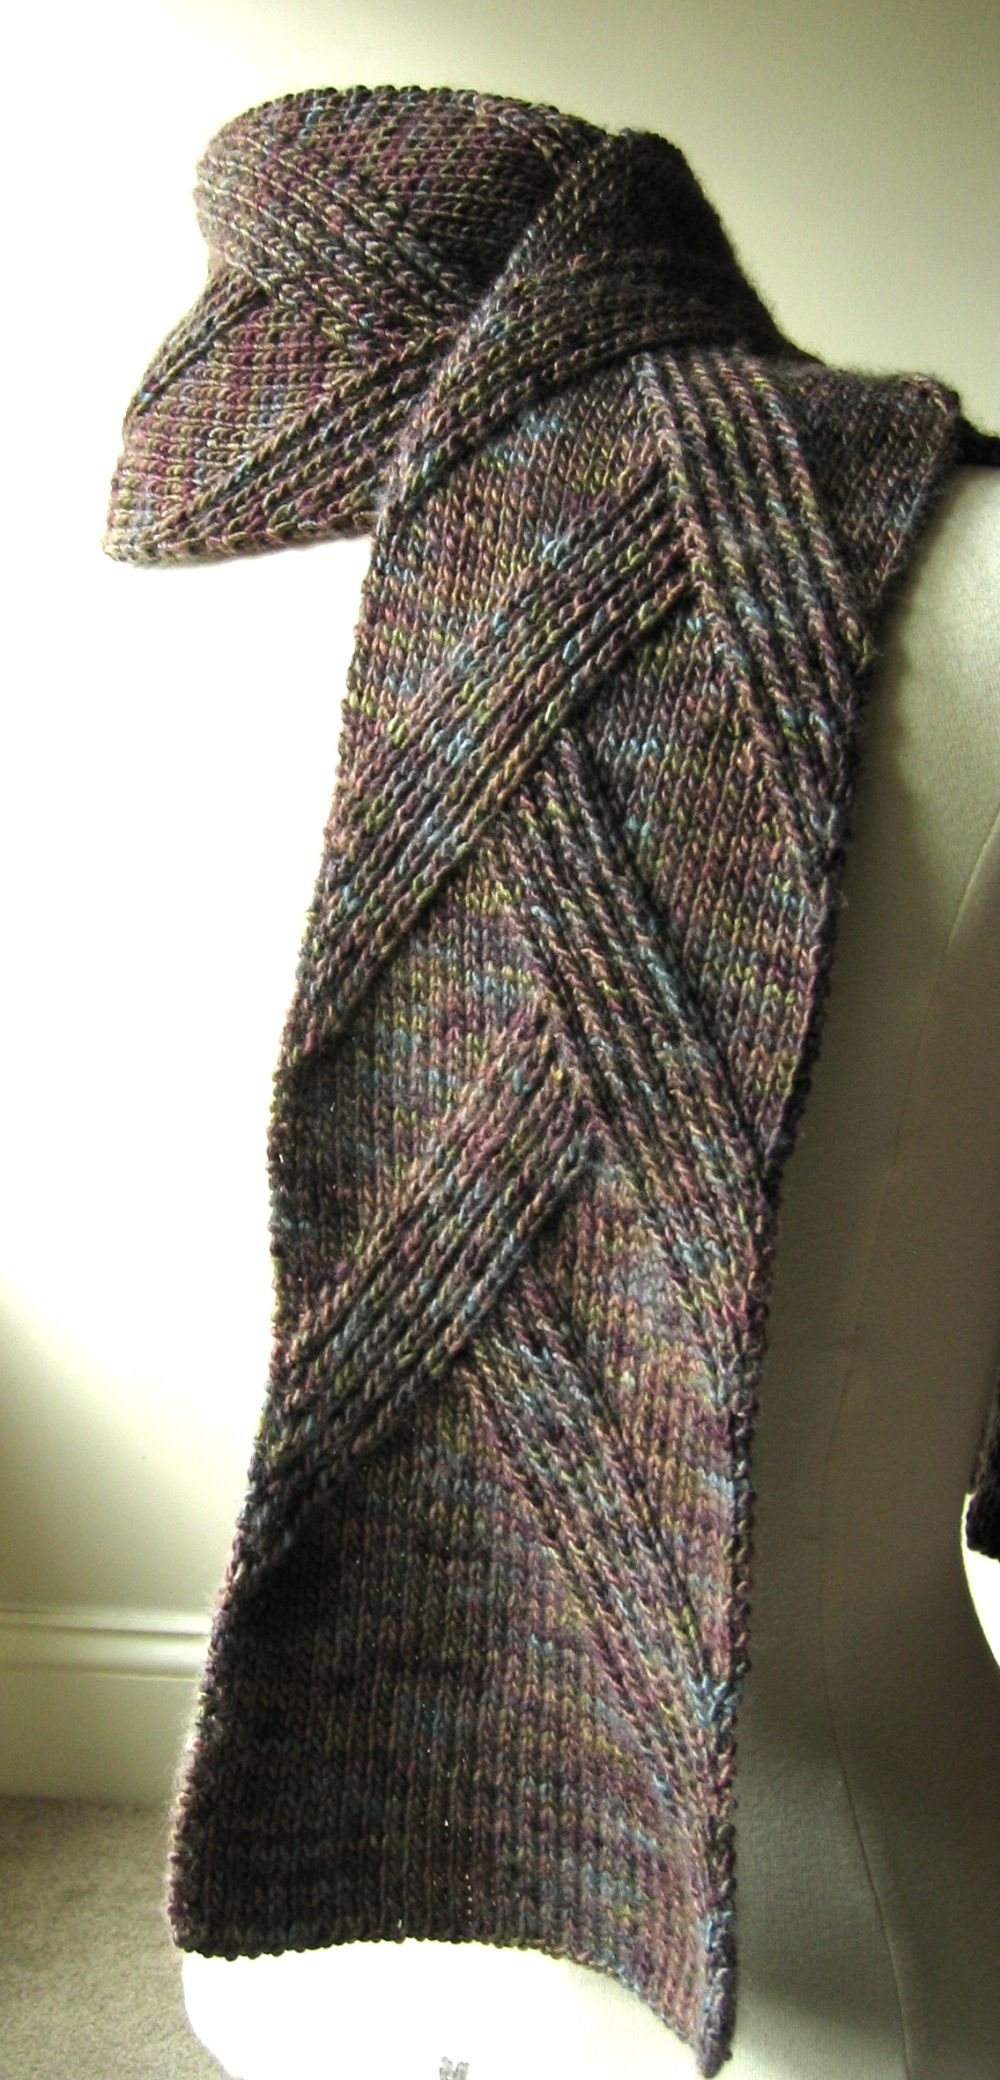 Free pattern 4500 free patterns to knit httppinterest free knitting pattern for a scarf i also like the stitch for other projects rippenschal my favourite ribbed scarf pattern by margarete dolff bankloansurffo Image collections